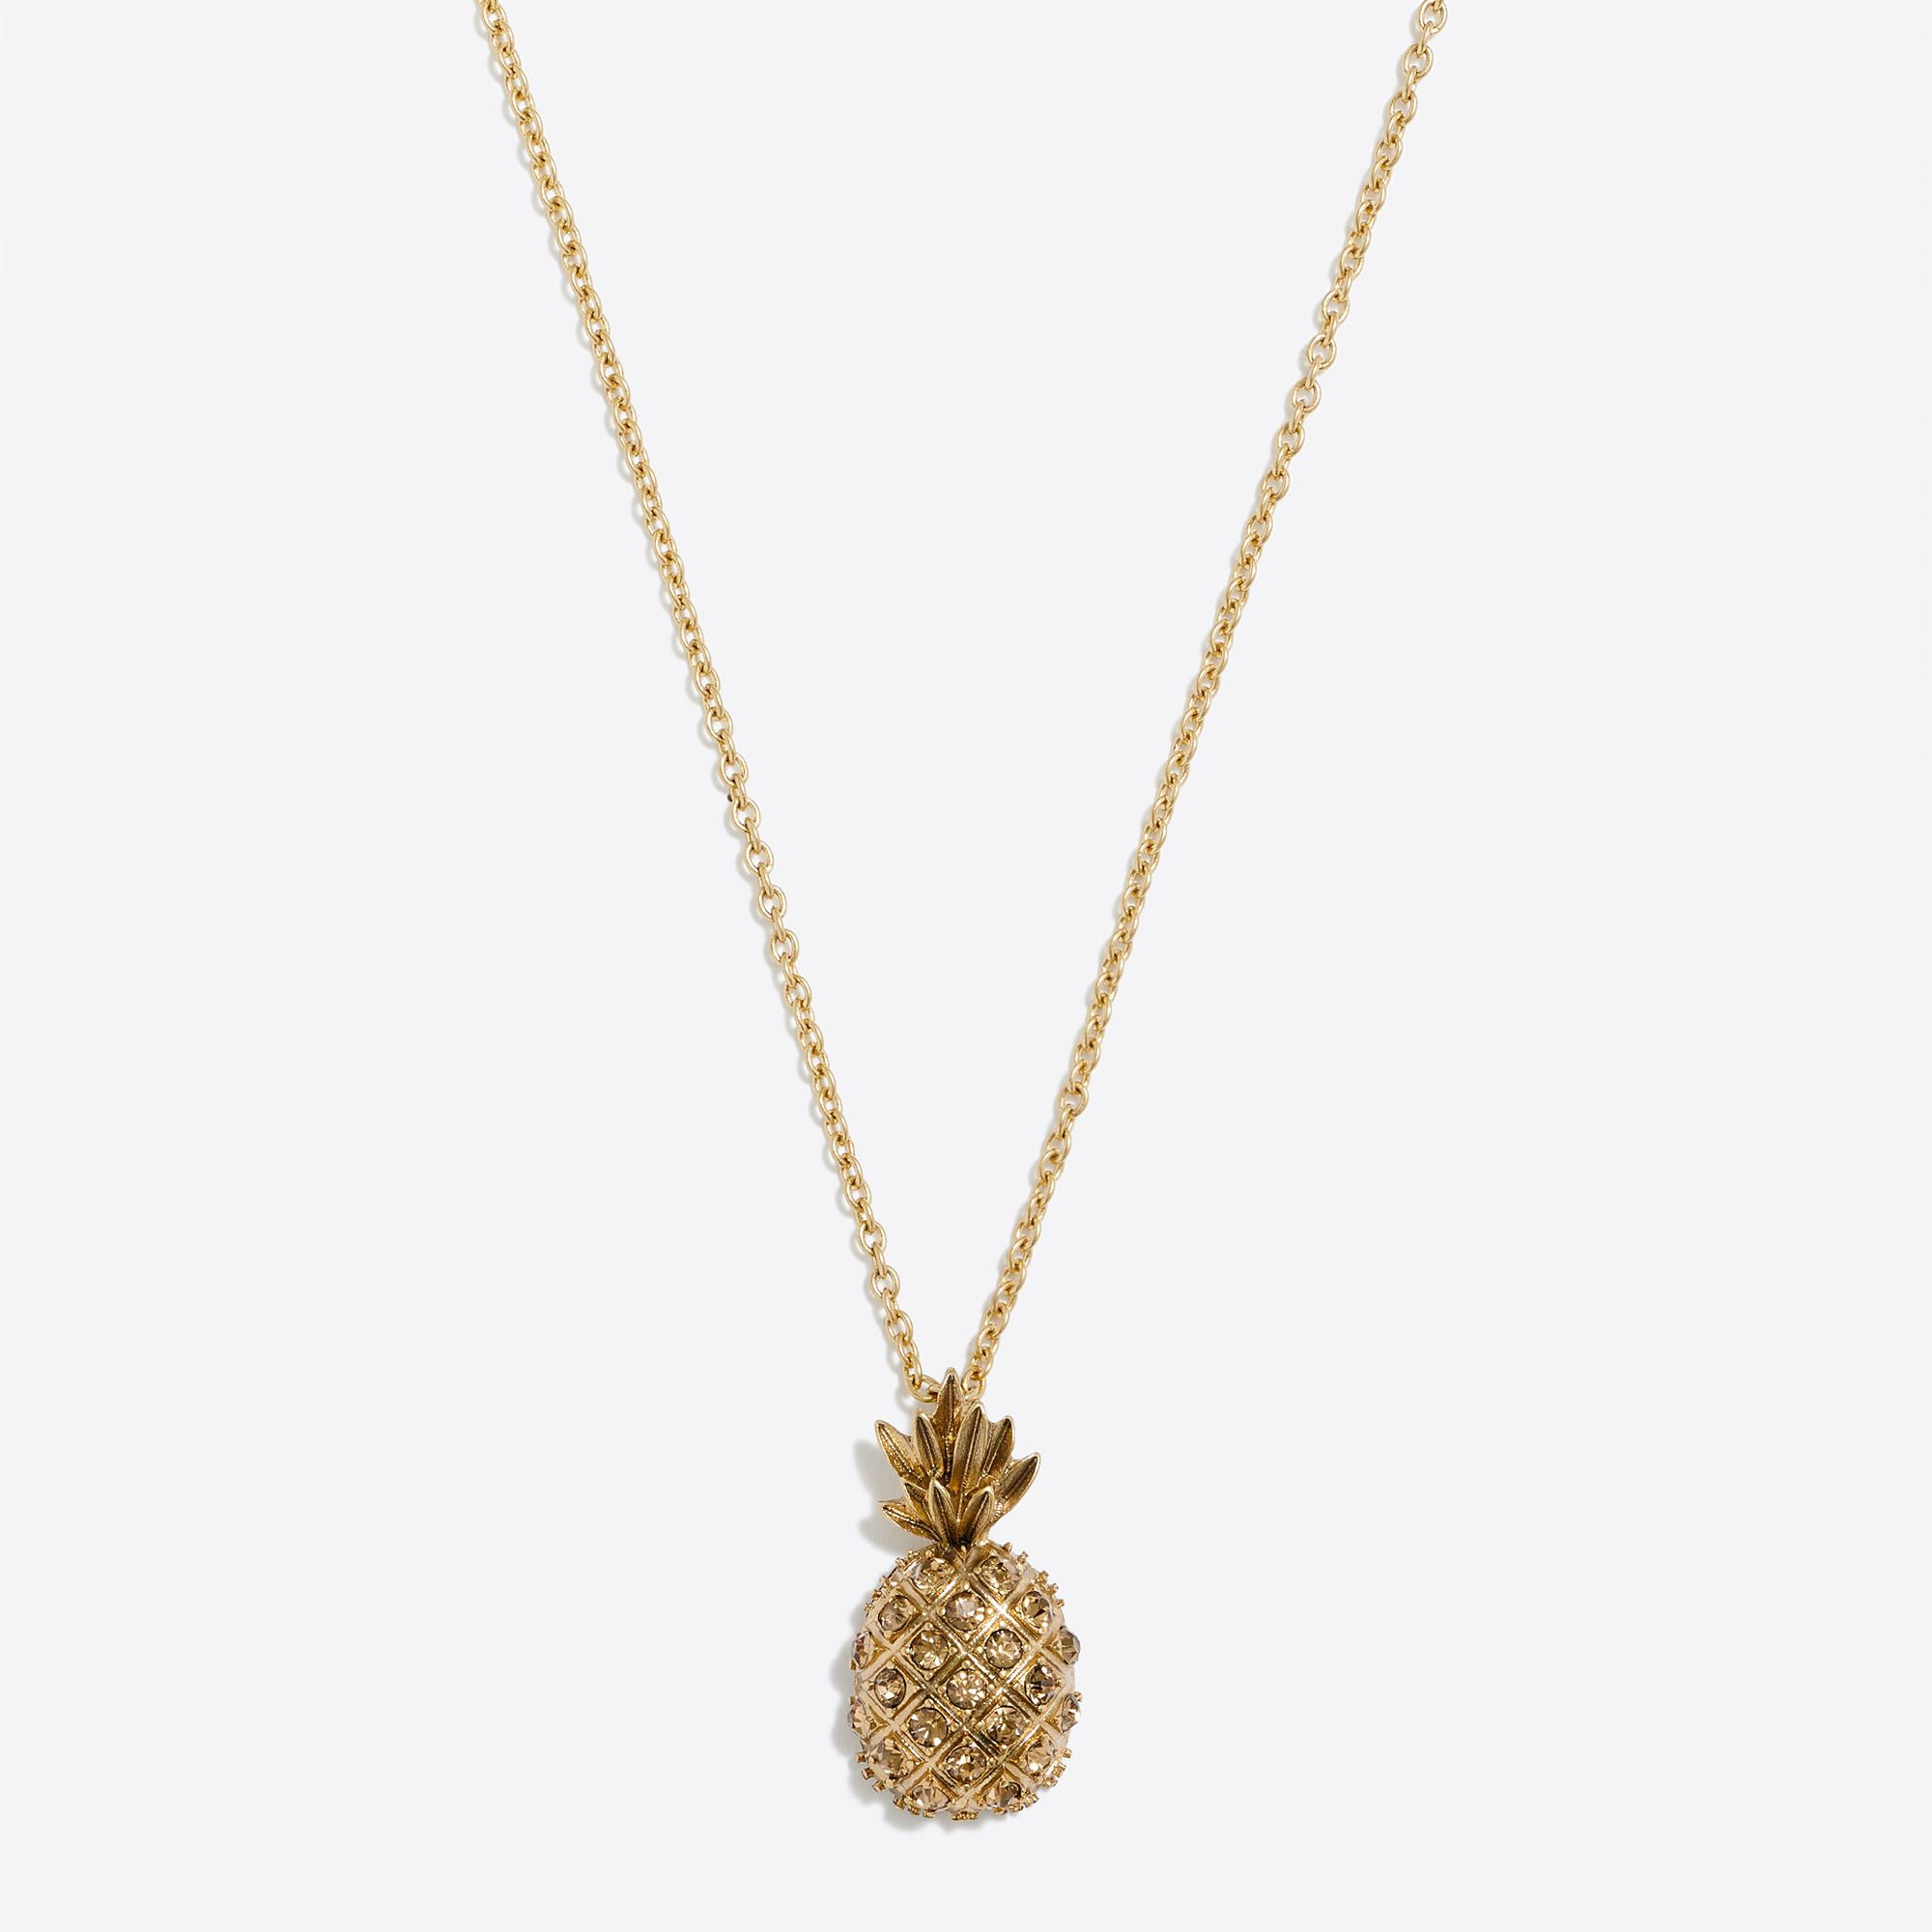 Zinc Glass Steel Light Gold Ox Plating 30 With A 3 Extender Chain For Adjustable Length Import J Crew Jewelry Pineapple Jewelry Necklace